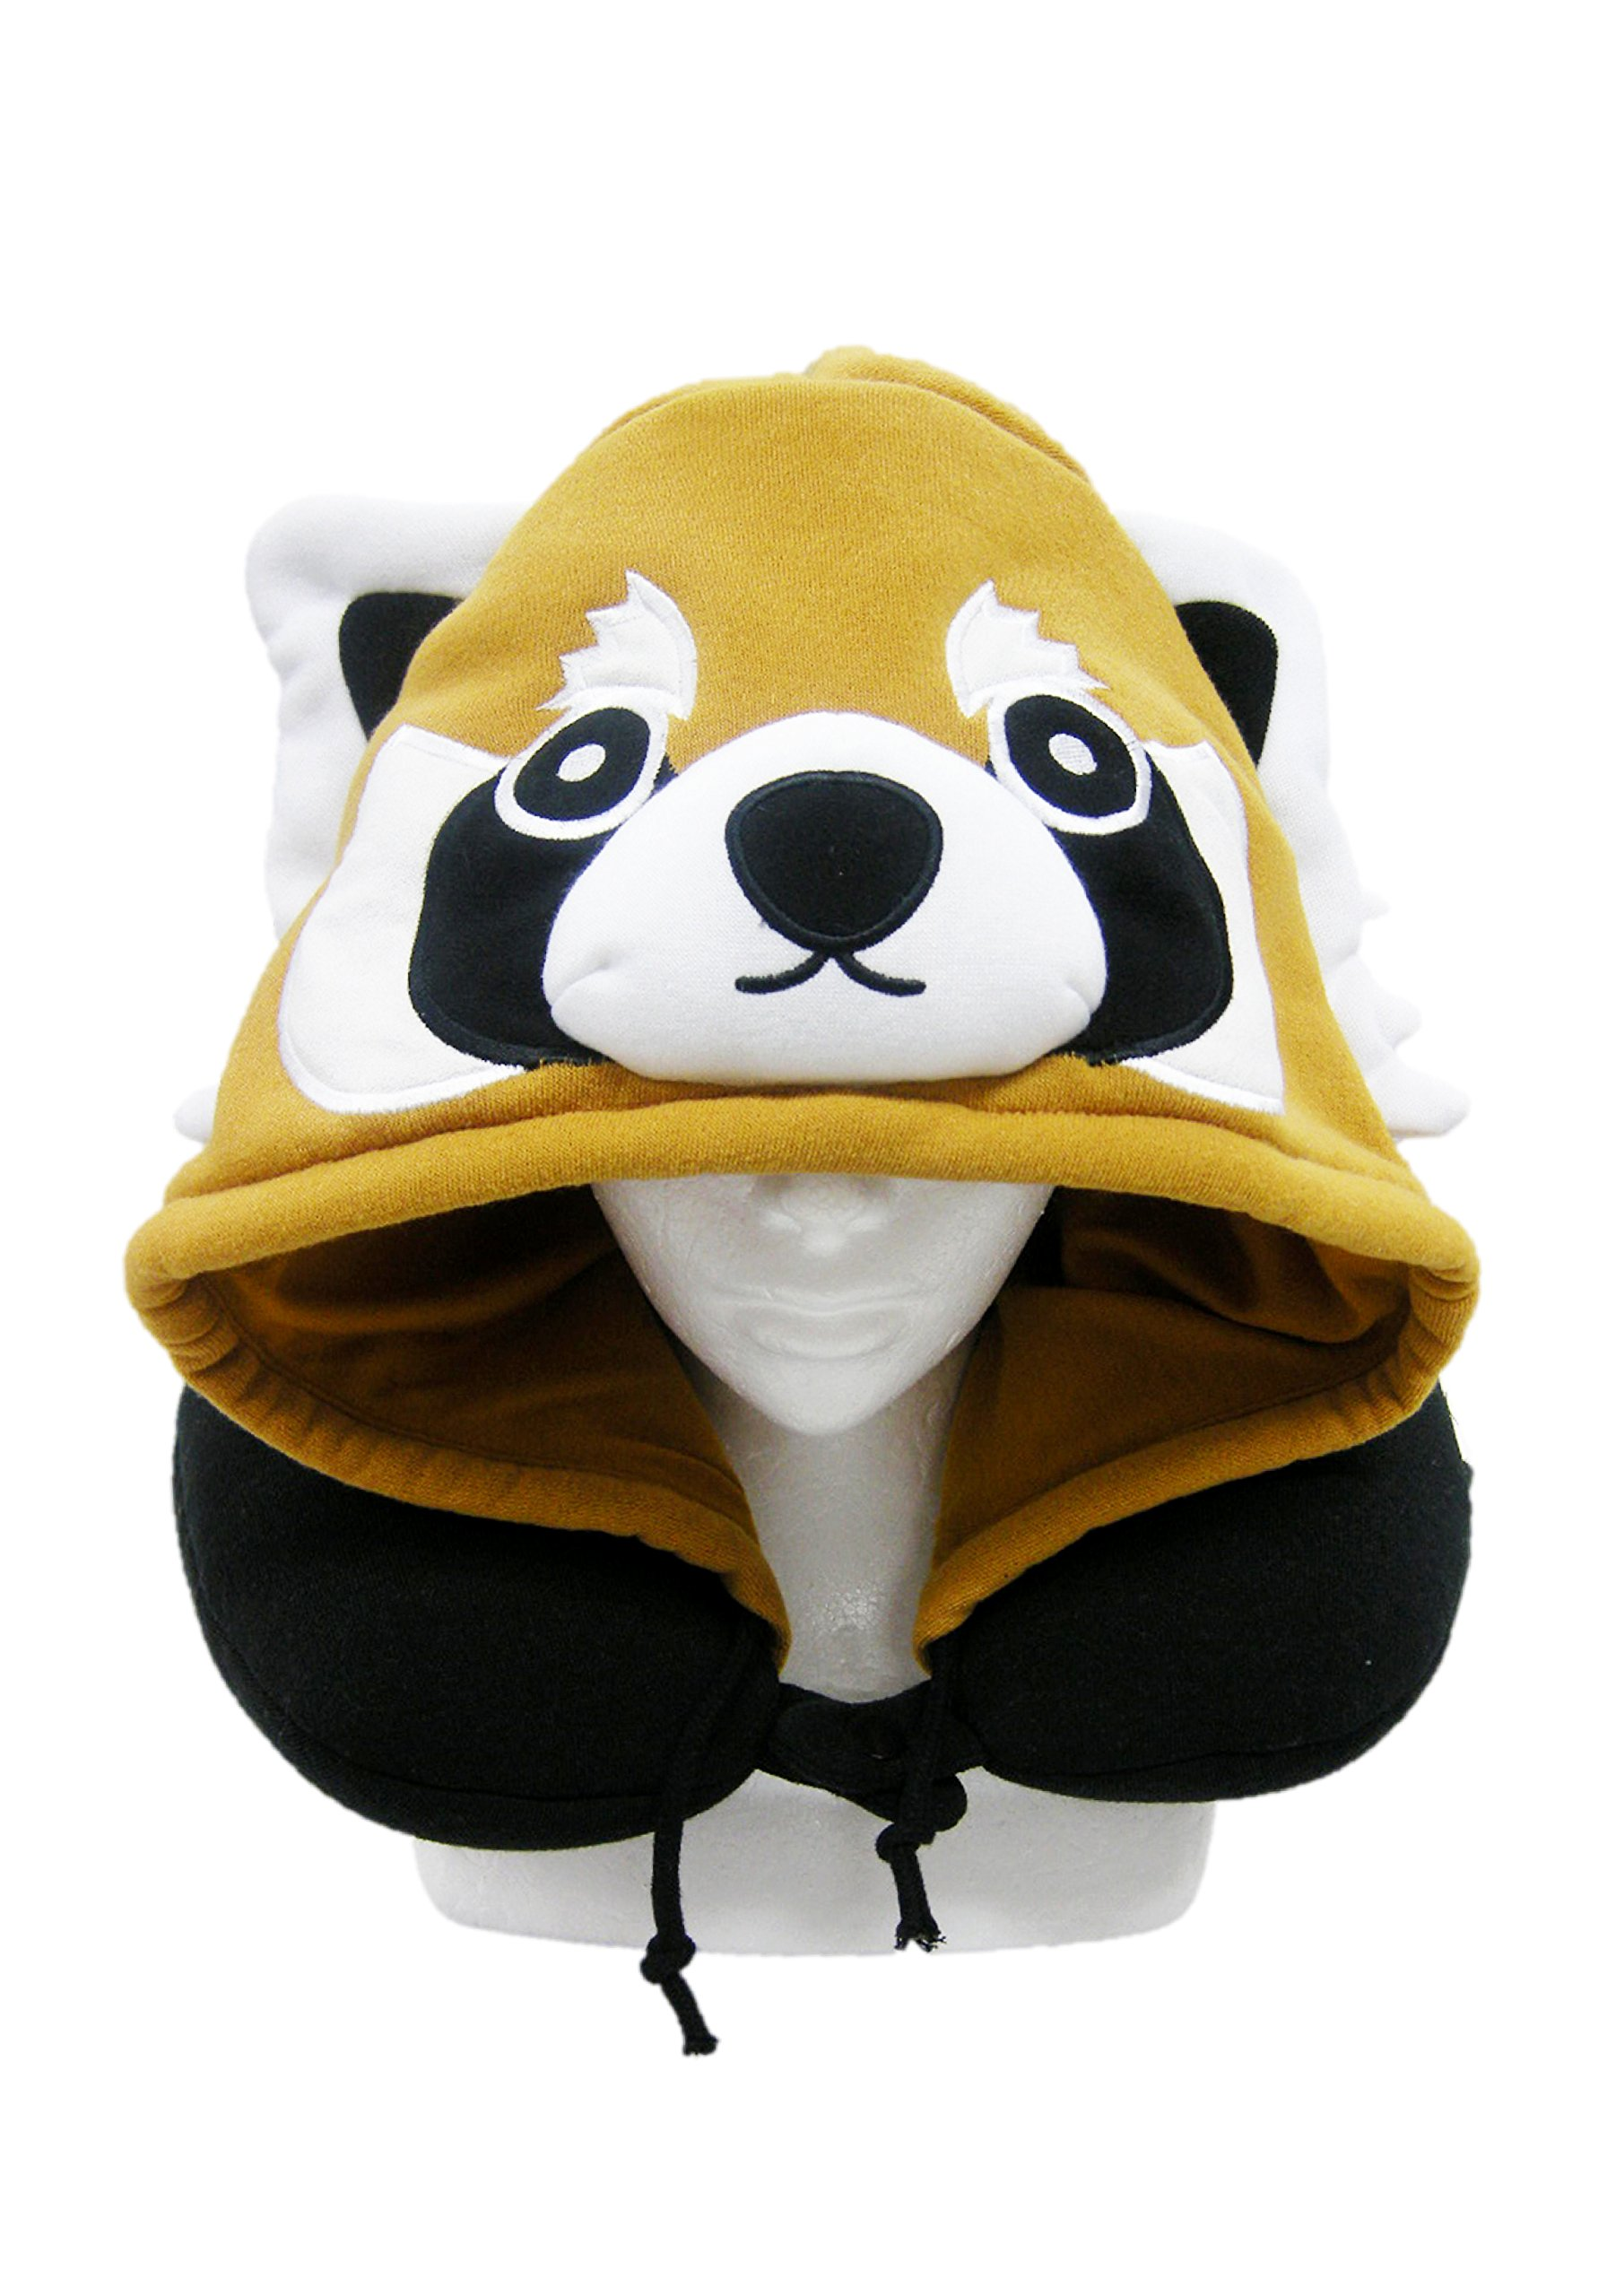 SAZAC Animal Neck Support Pillow - Soft, Cozy Travel Cushion with Adjustable Toggle - Attached Hood for Warmth and Privacy - Authentic Japanese Kawaii Design - Premium Quality (Red Panda)